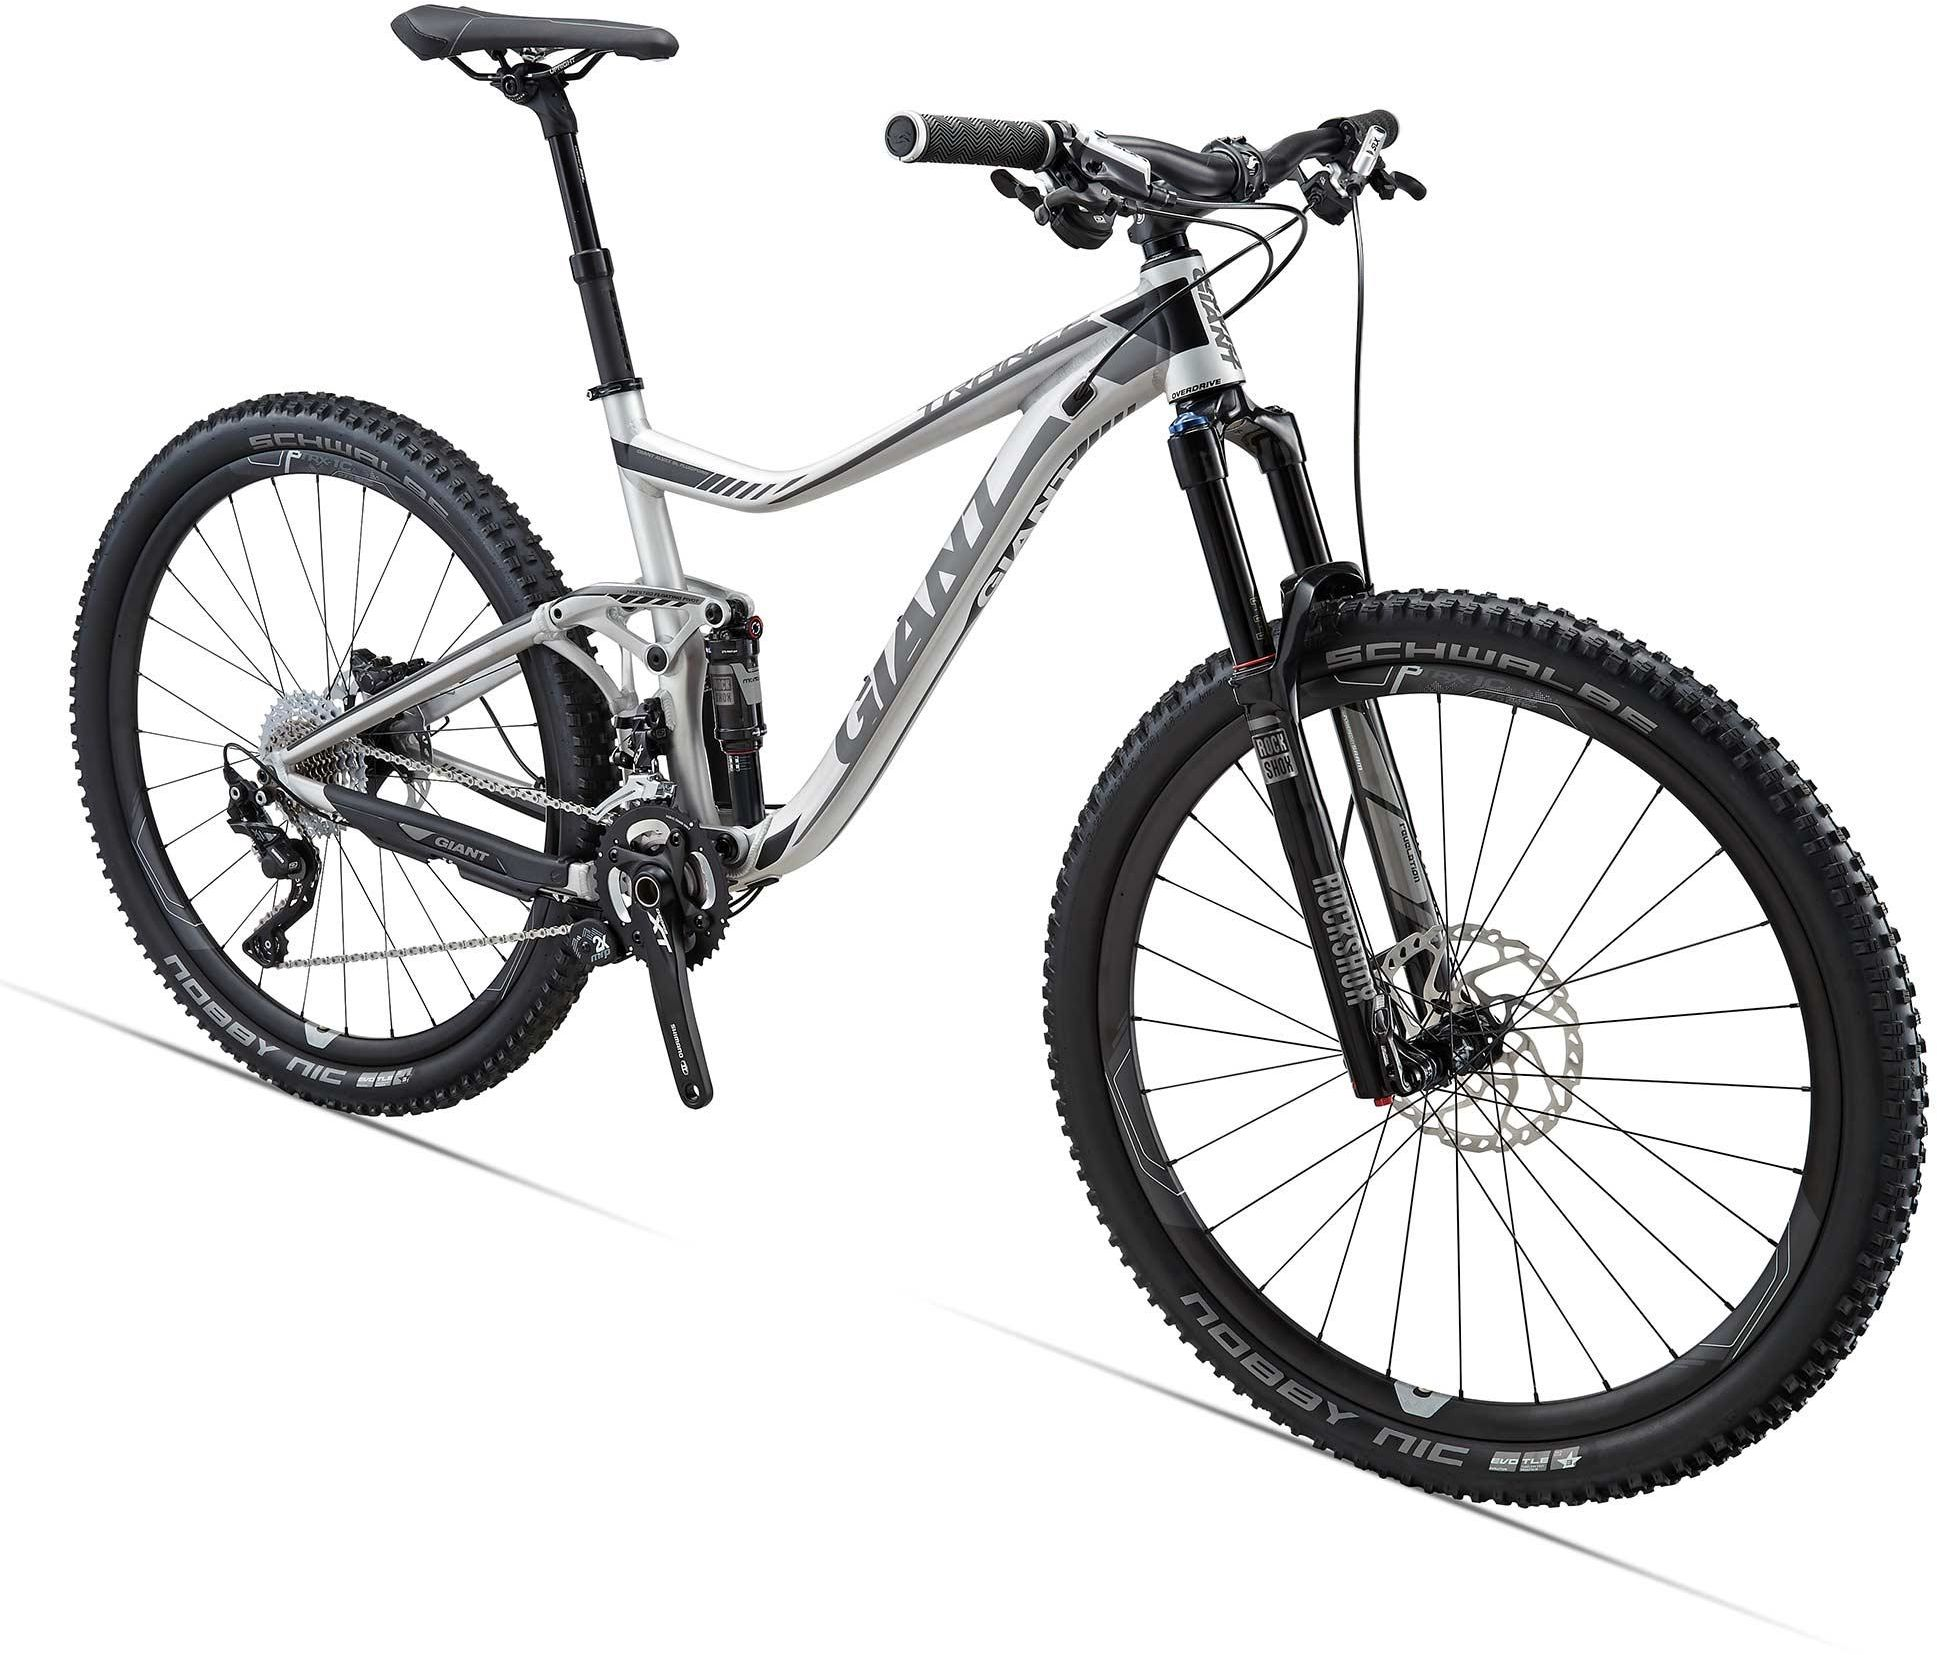 faac2fd07fd Giant Trance 27.5 1 2015 review - The Bike List